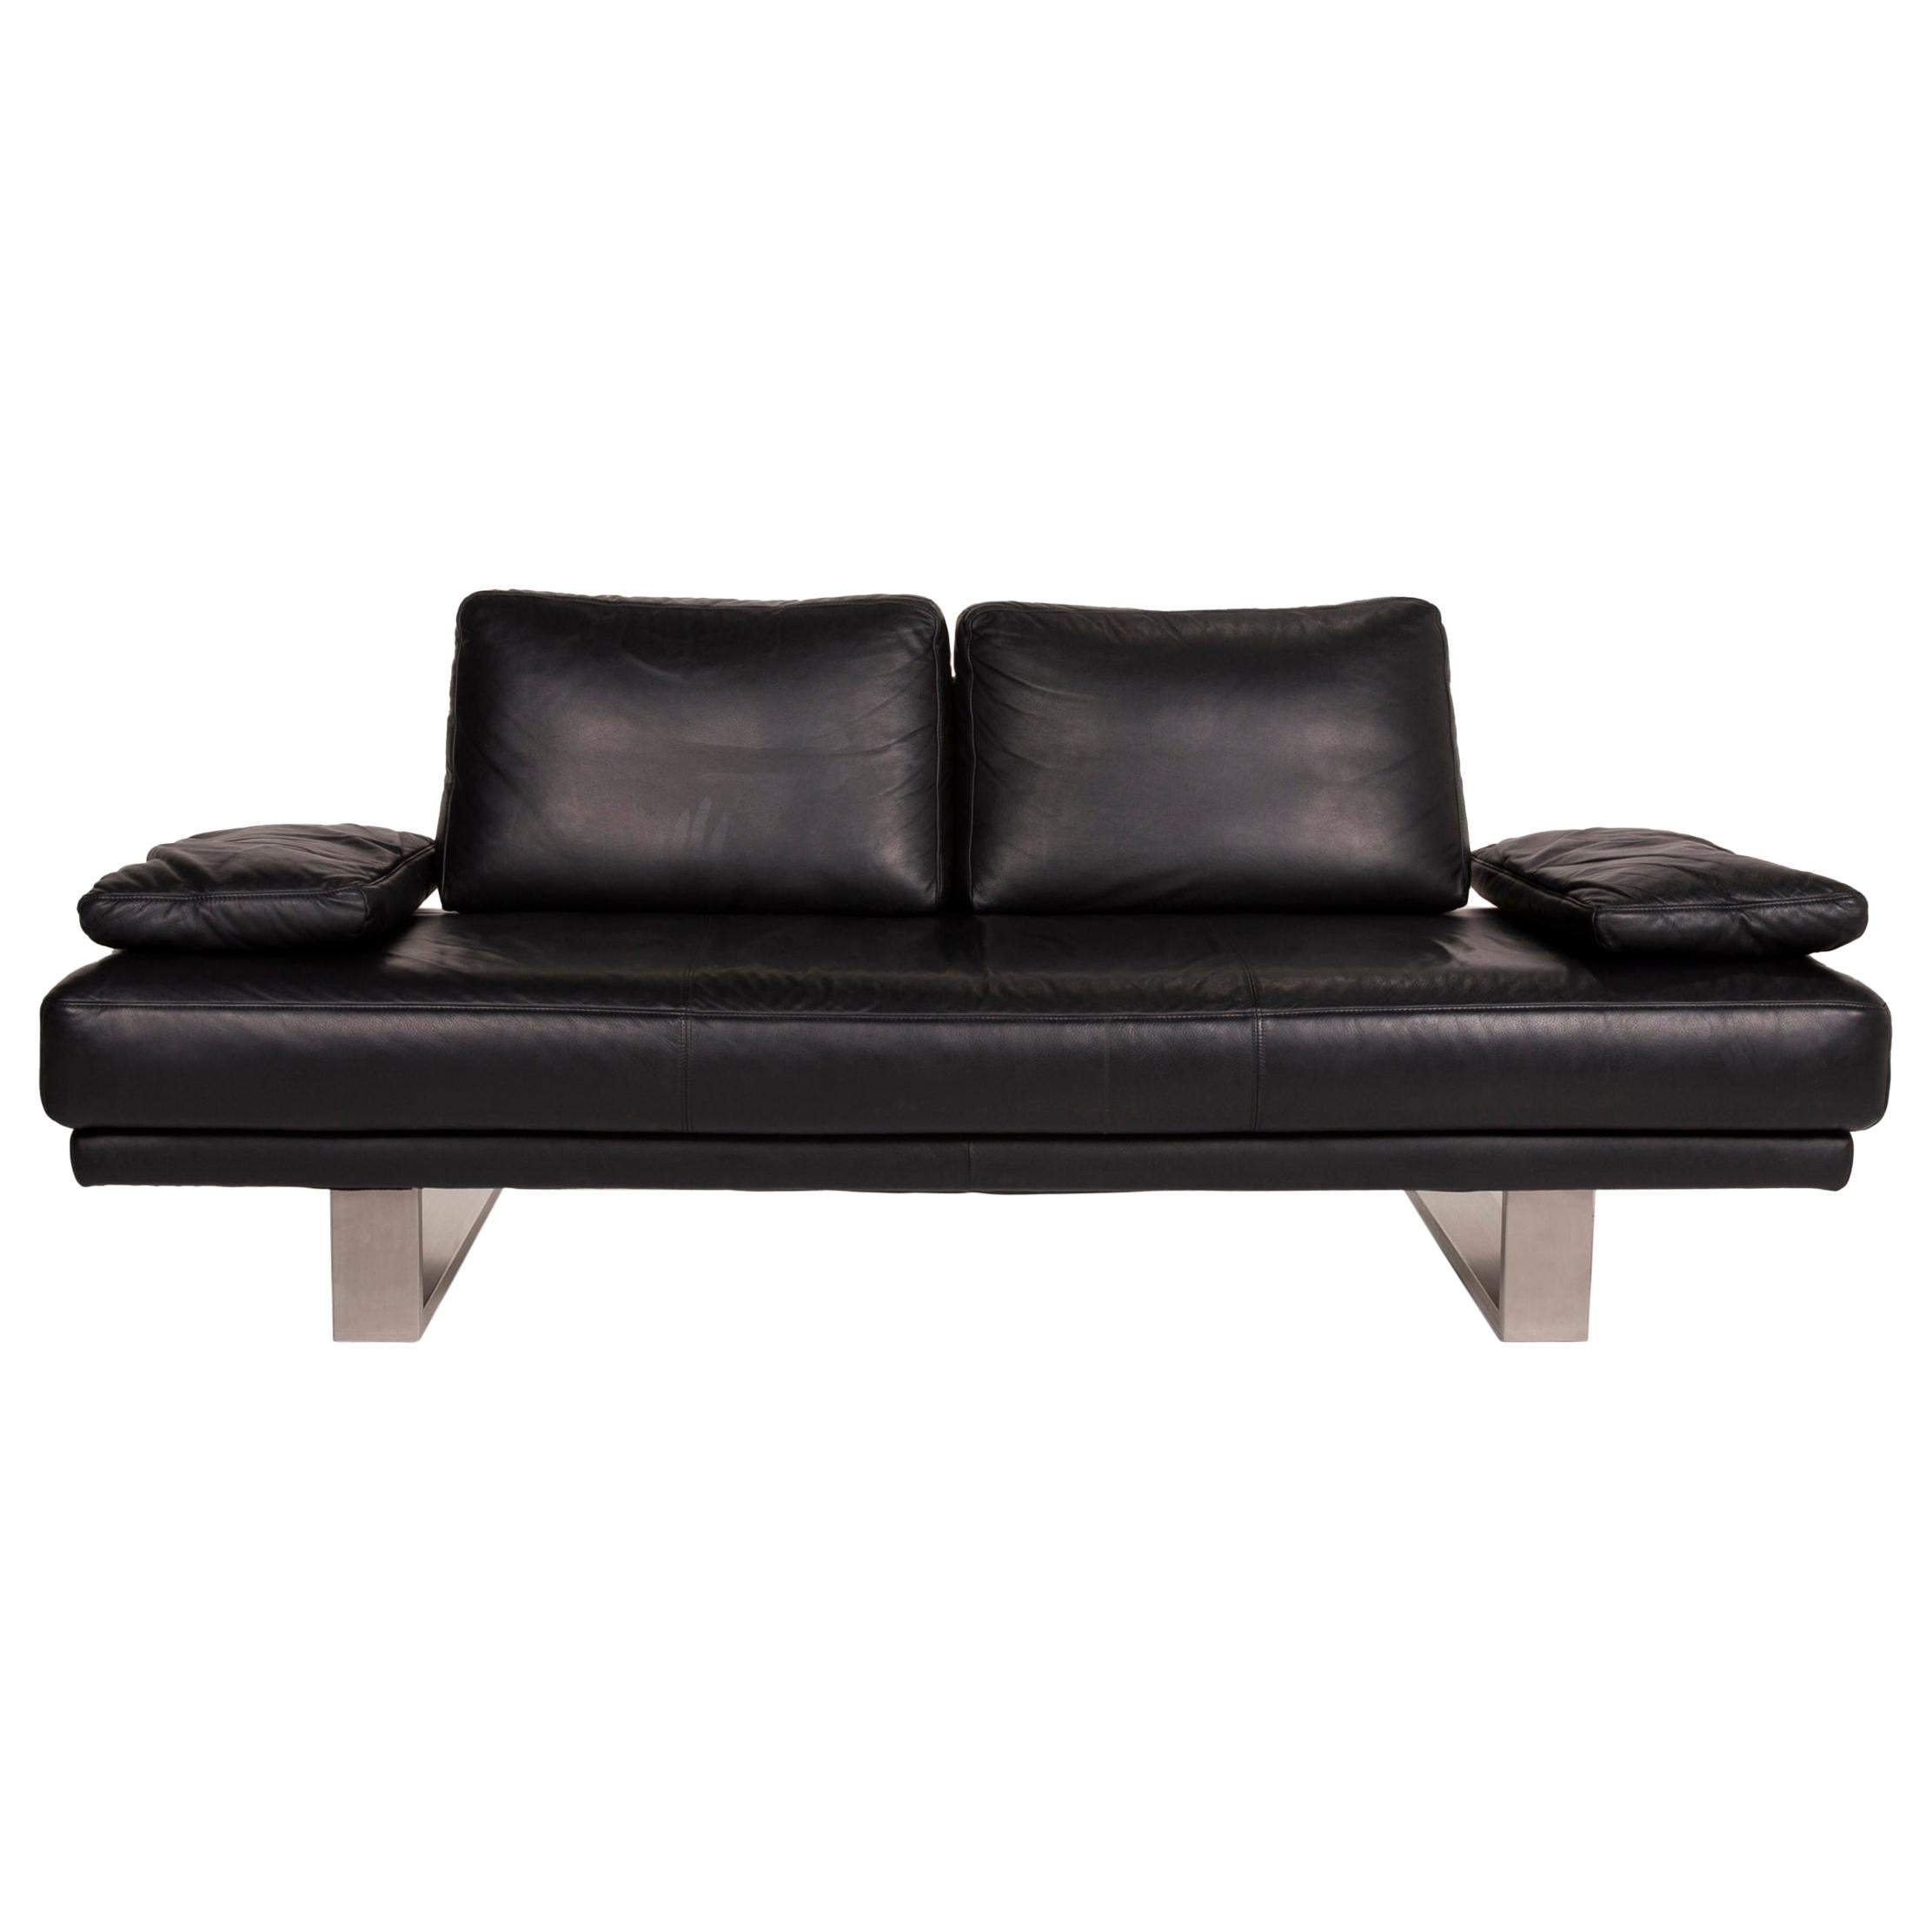 Rolf Benz 6600 Leather Sofa Black Two-Seater